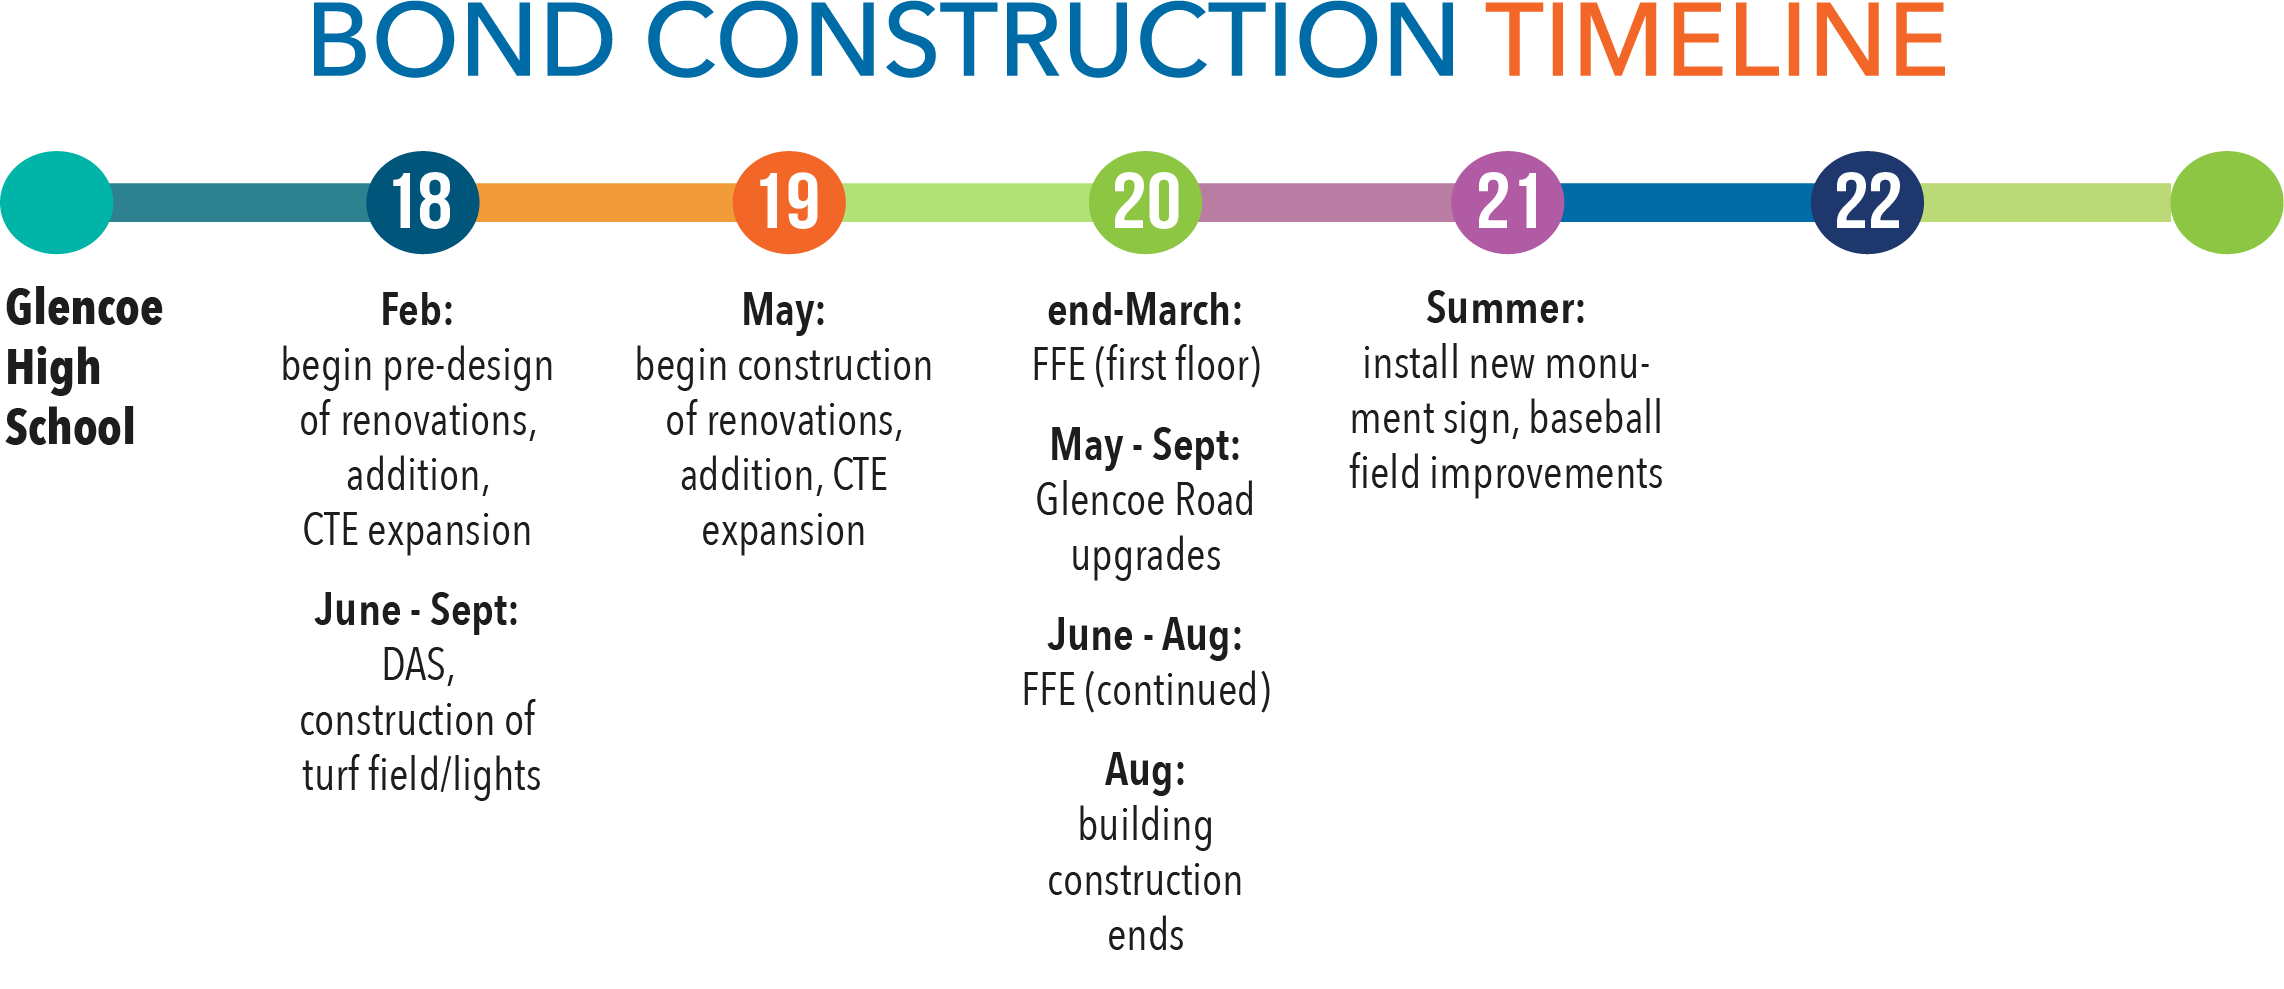 Bond construction timeline for Glencoe